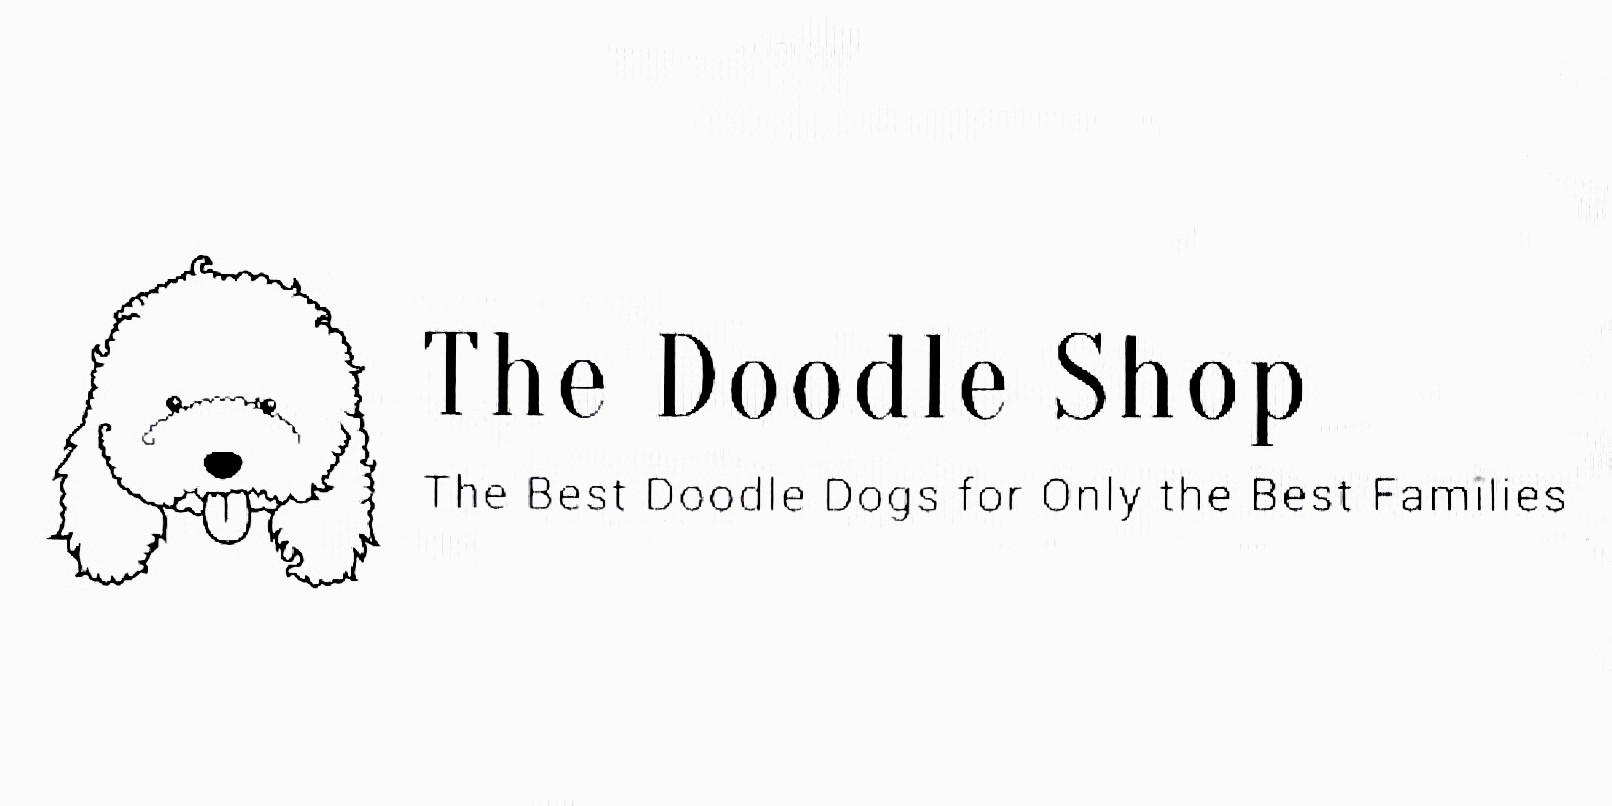 Upcoming Litters The Doodle Shop